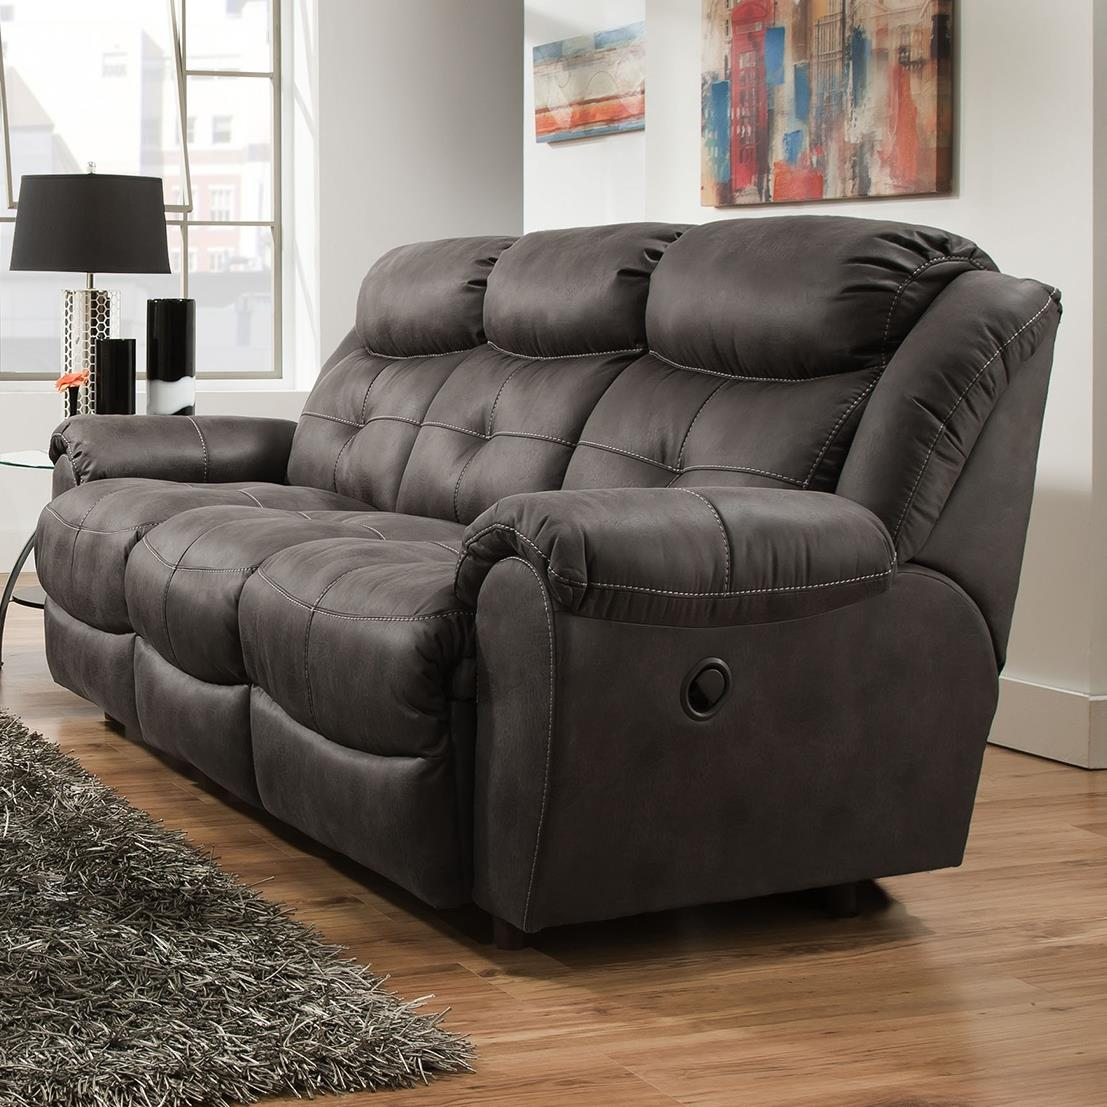 Lisbon Reclining Sofa by Franklin at Furniture Superstore - Rochester, MN